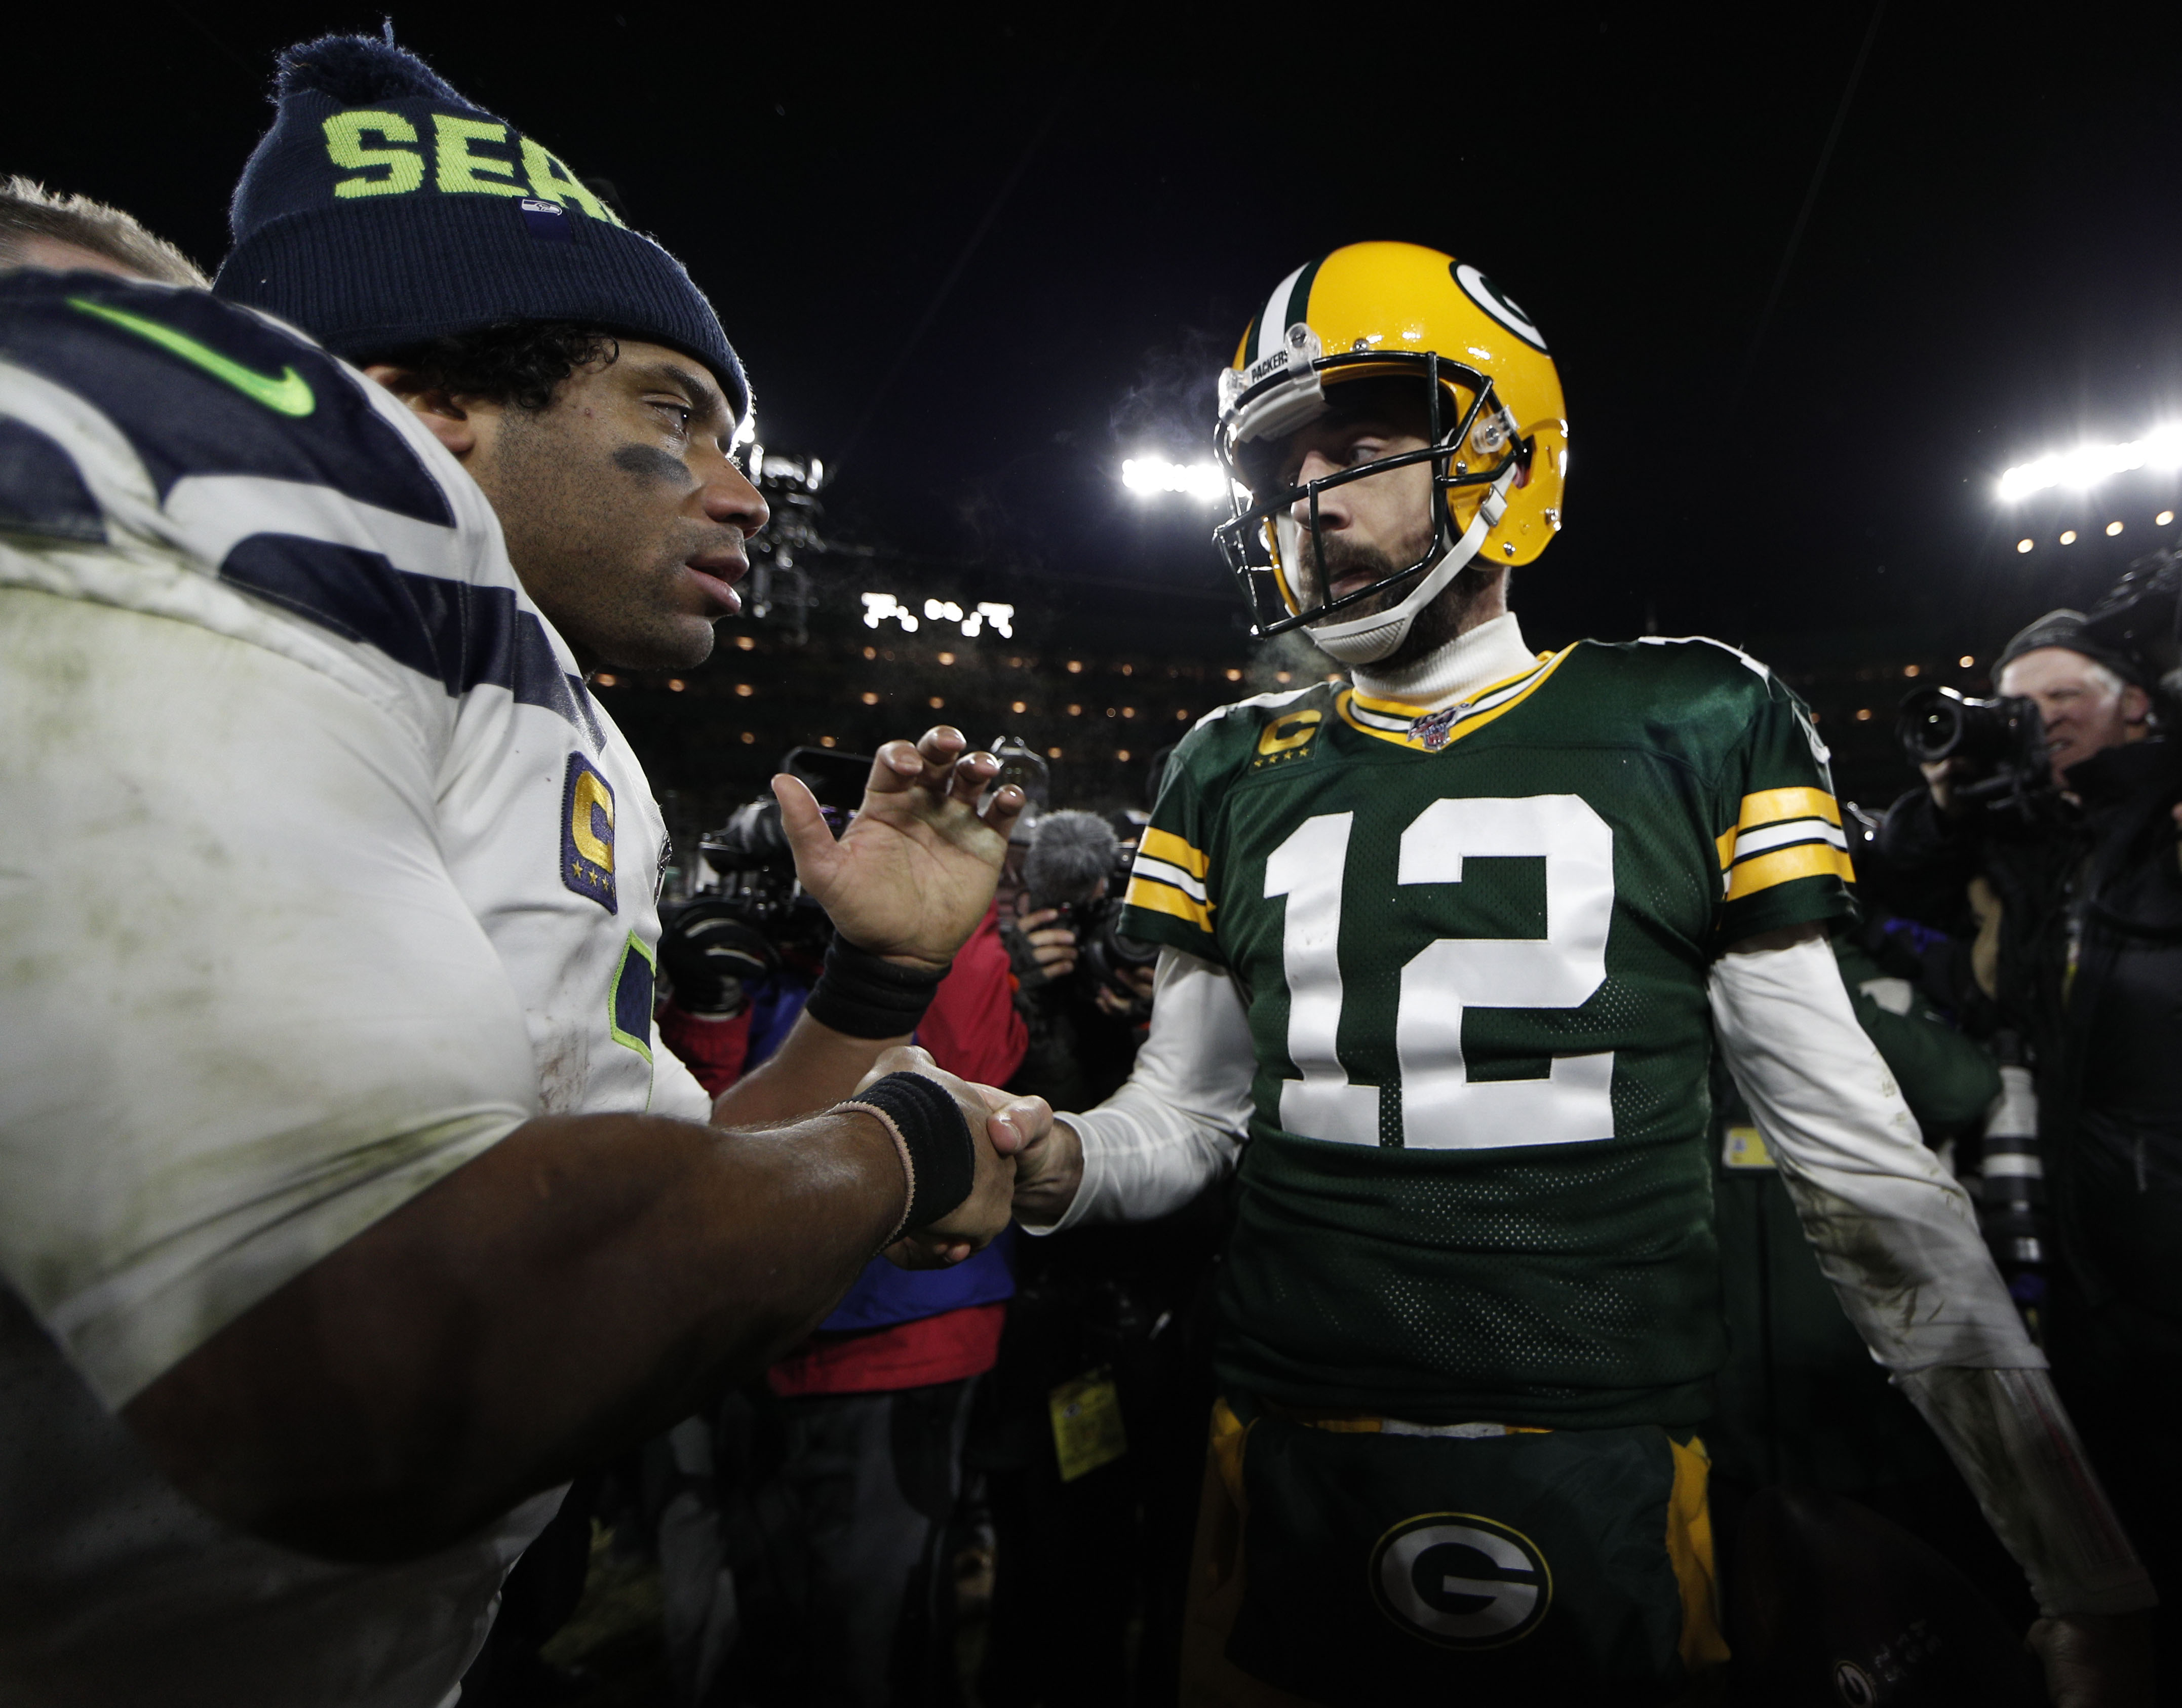 The Packers Have Excelled in the Cold in Home Divisional Playoff Games